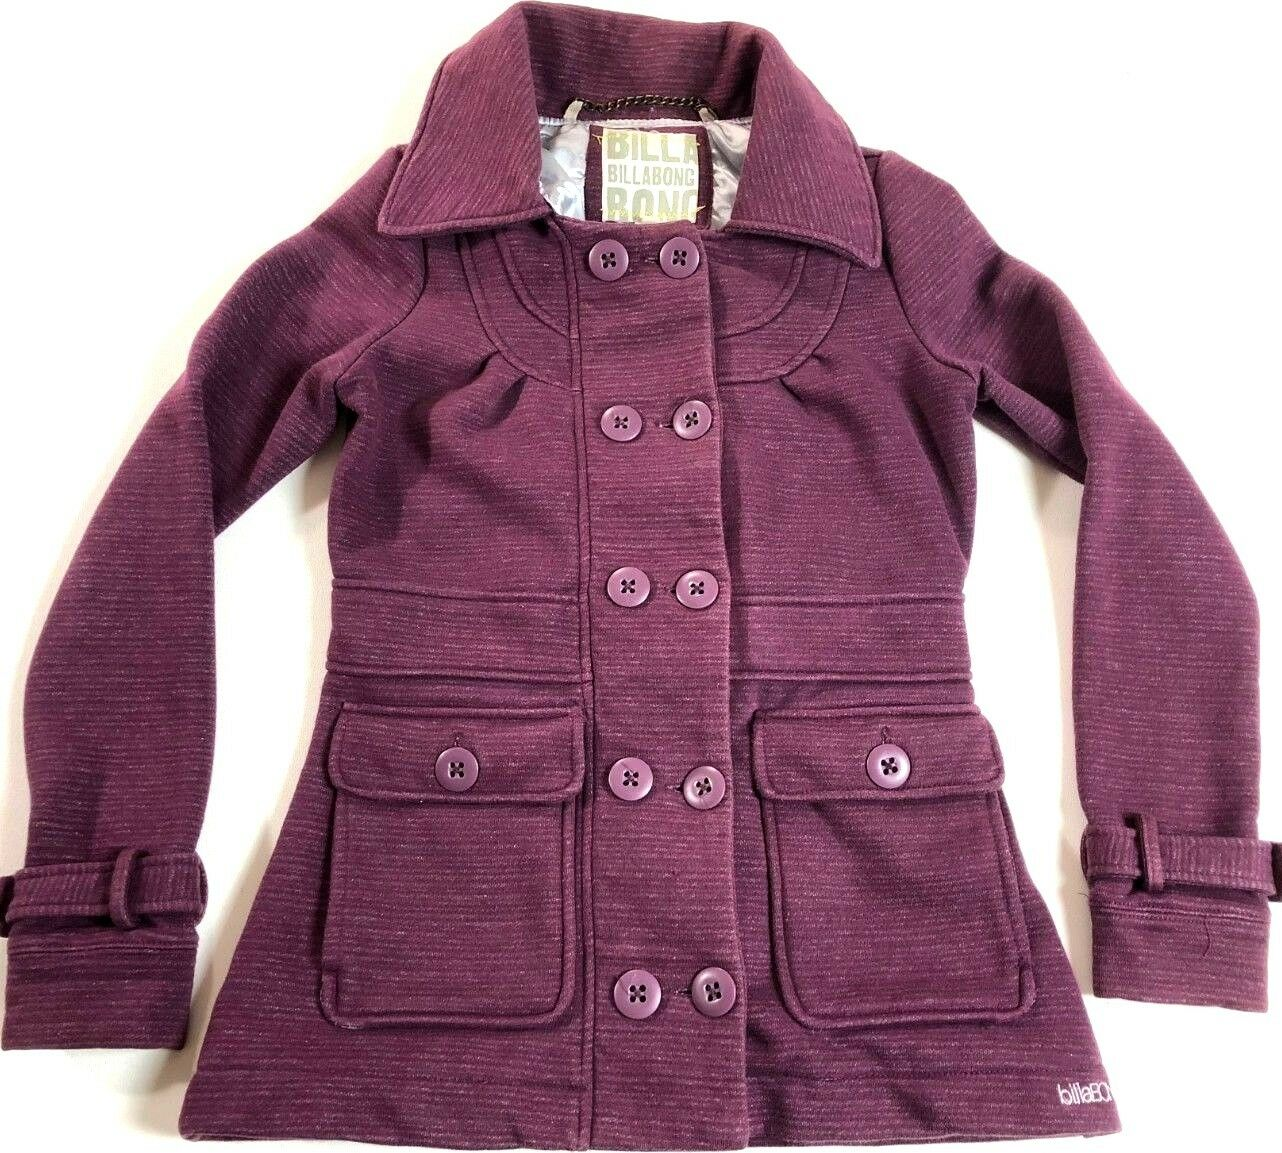 BILLABONG Women's Jacket S Peacoat Maroon Heather Button Lined Surf Cotton Poly